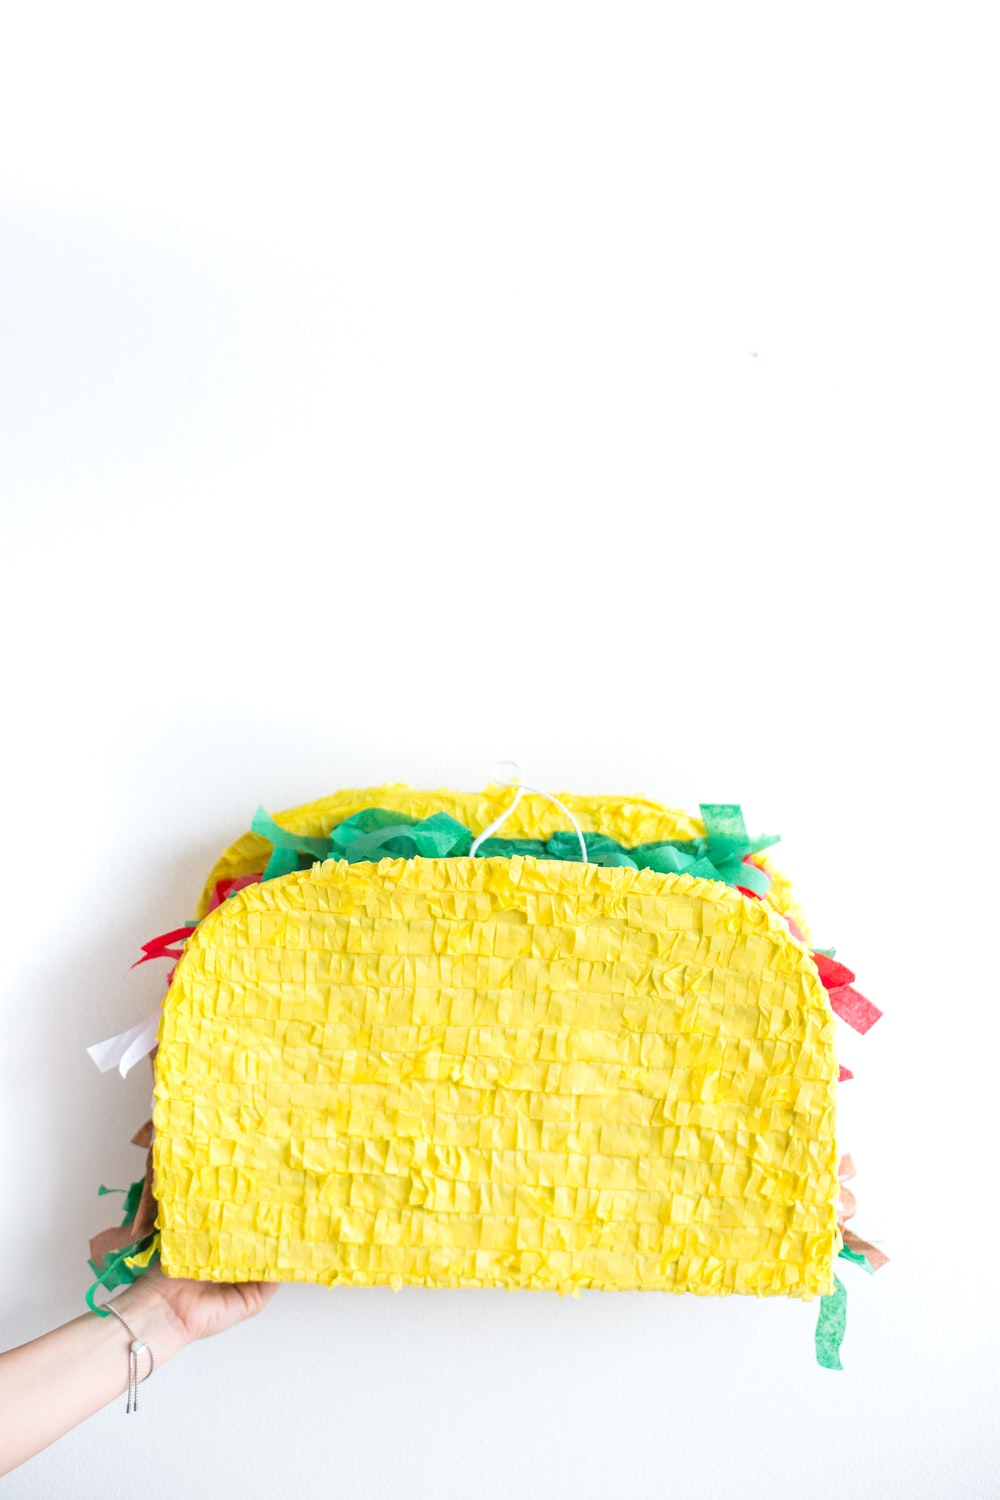 yellow sandwich pinata